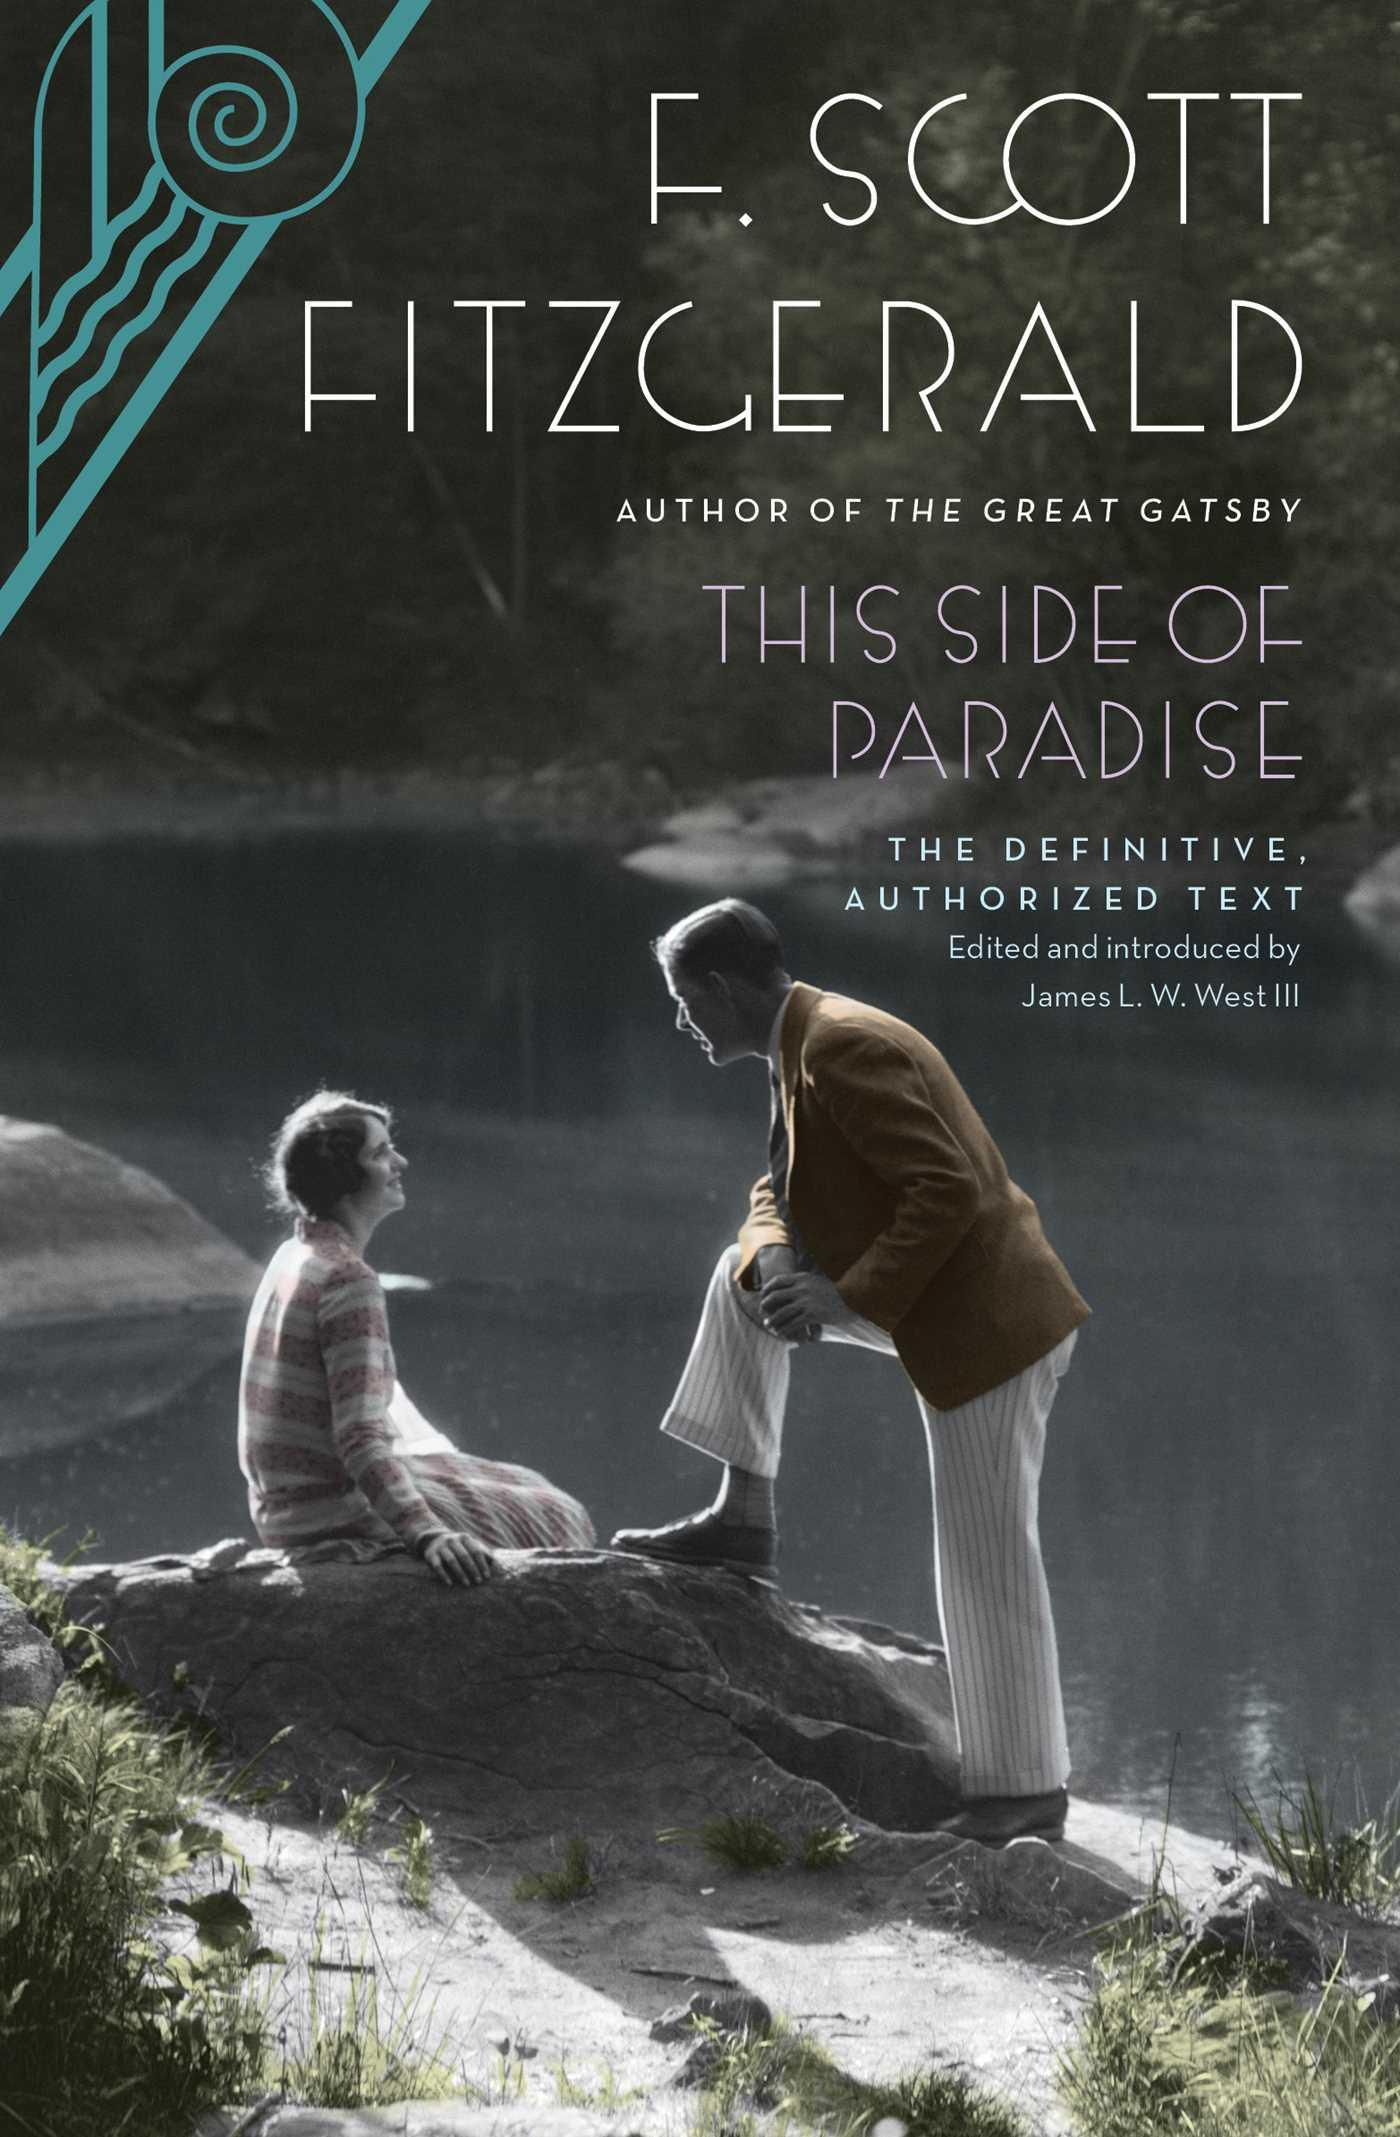 an analysis of amory blaine and his search for identity in this side of paradise by f scott fitzgera